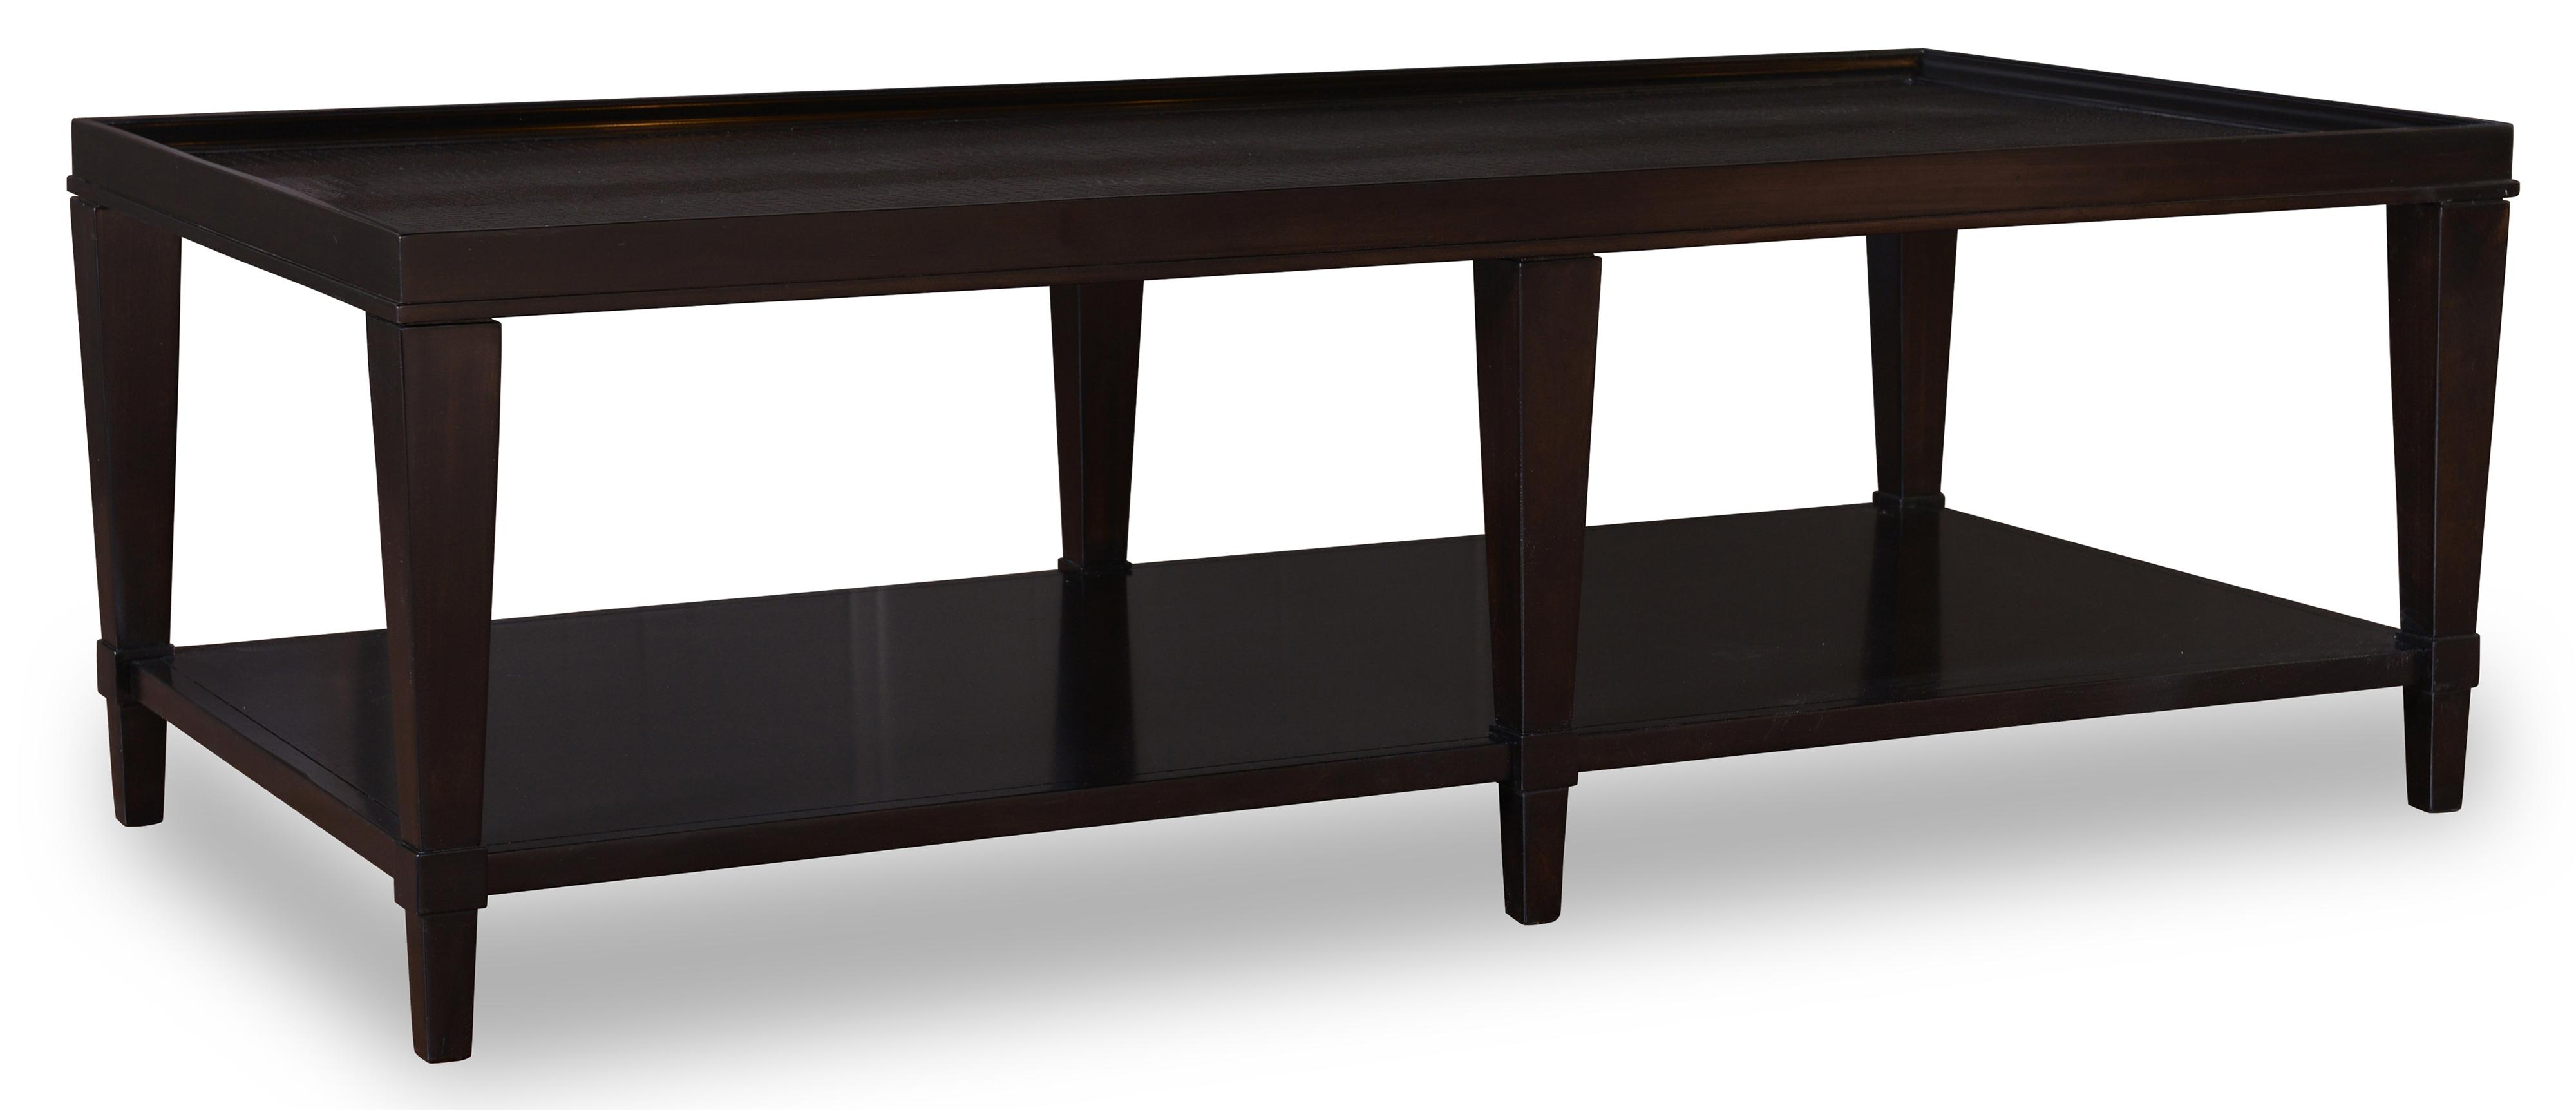 A.R.T. Furniture Inc Cosmopolitan Rectangular Cocktail Table - Item Number: 208300-1815